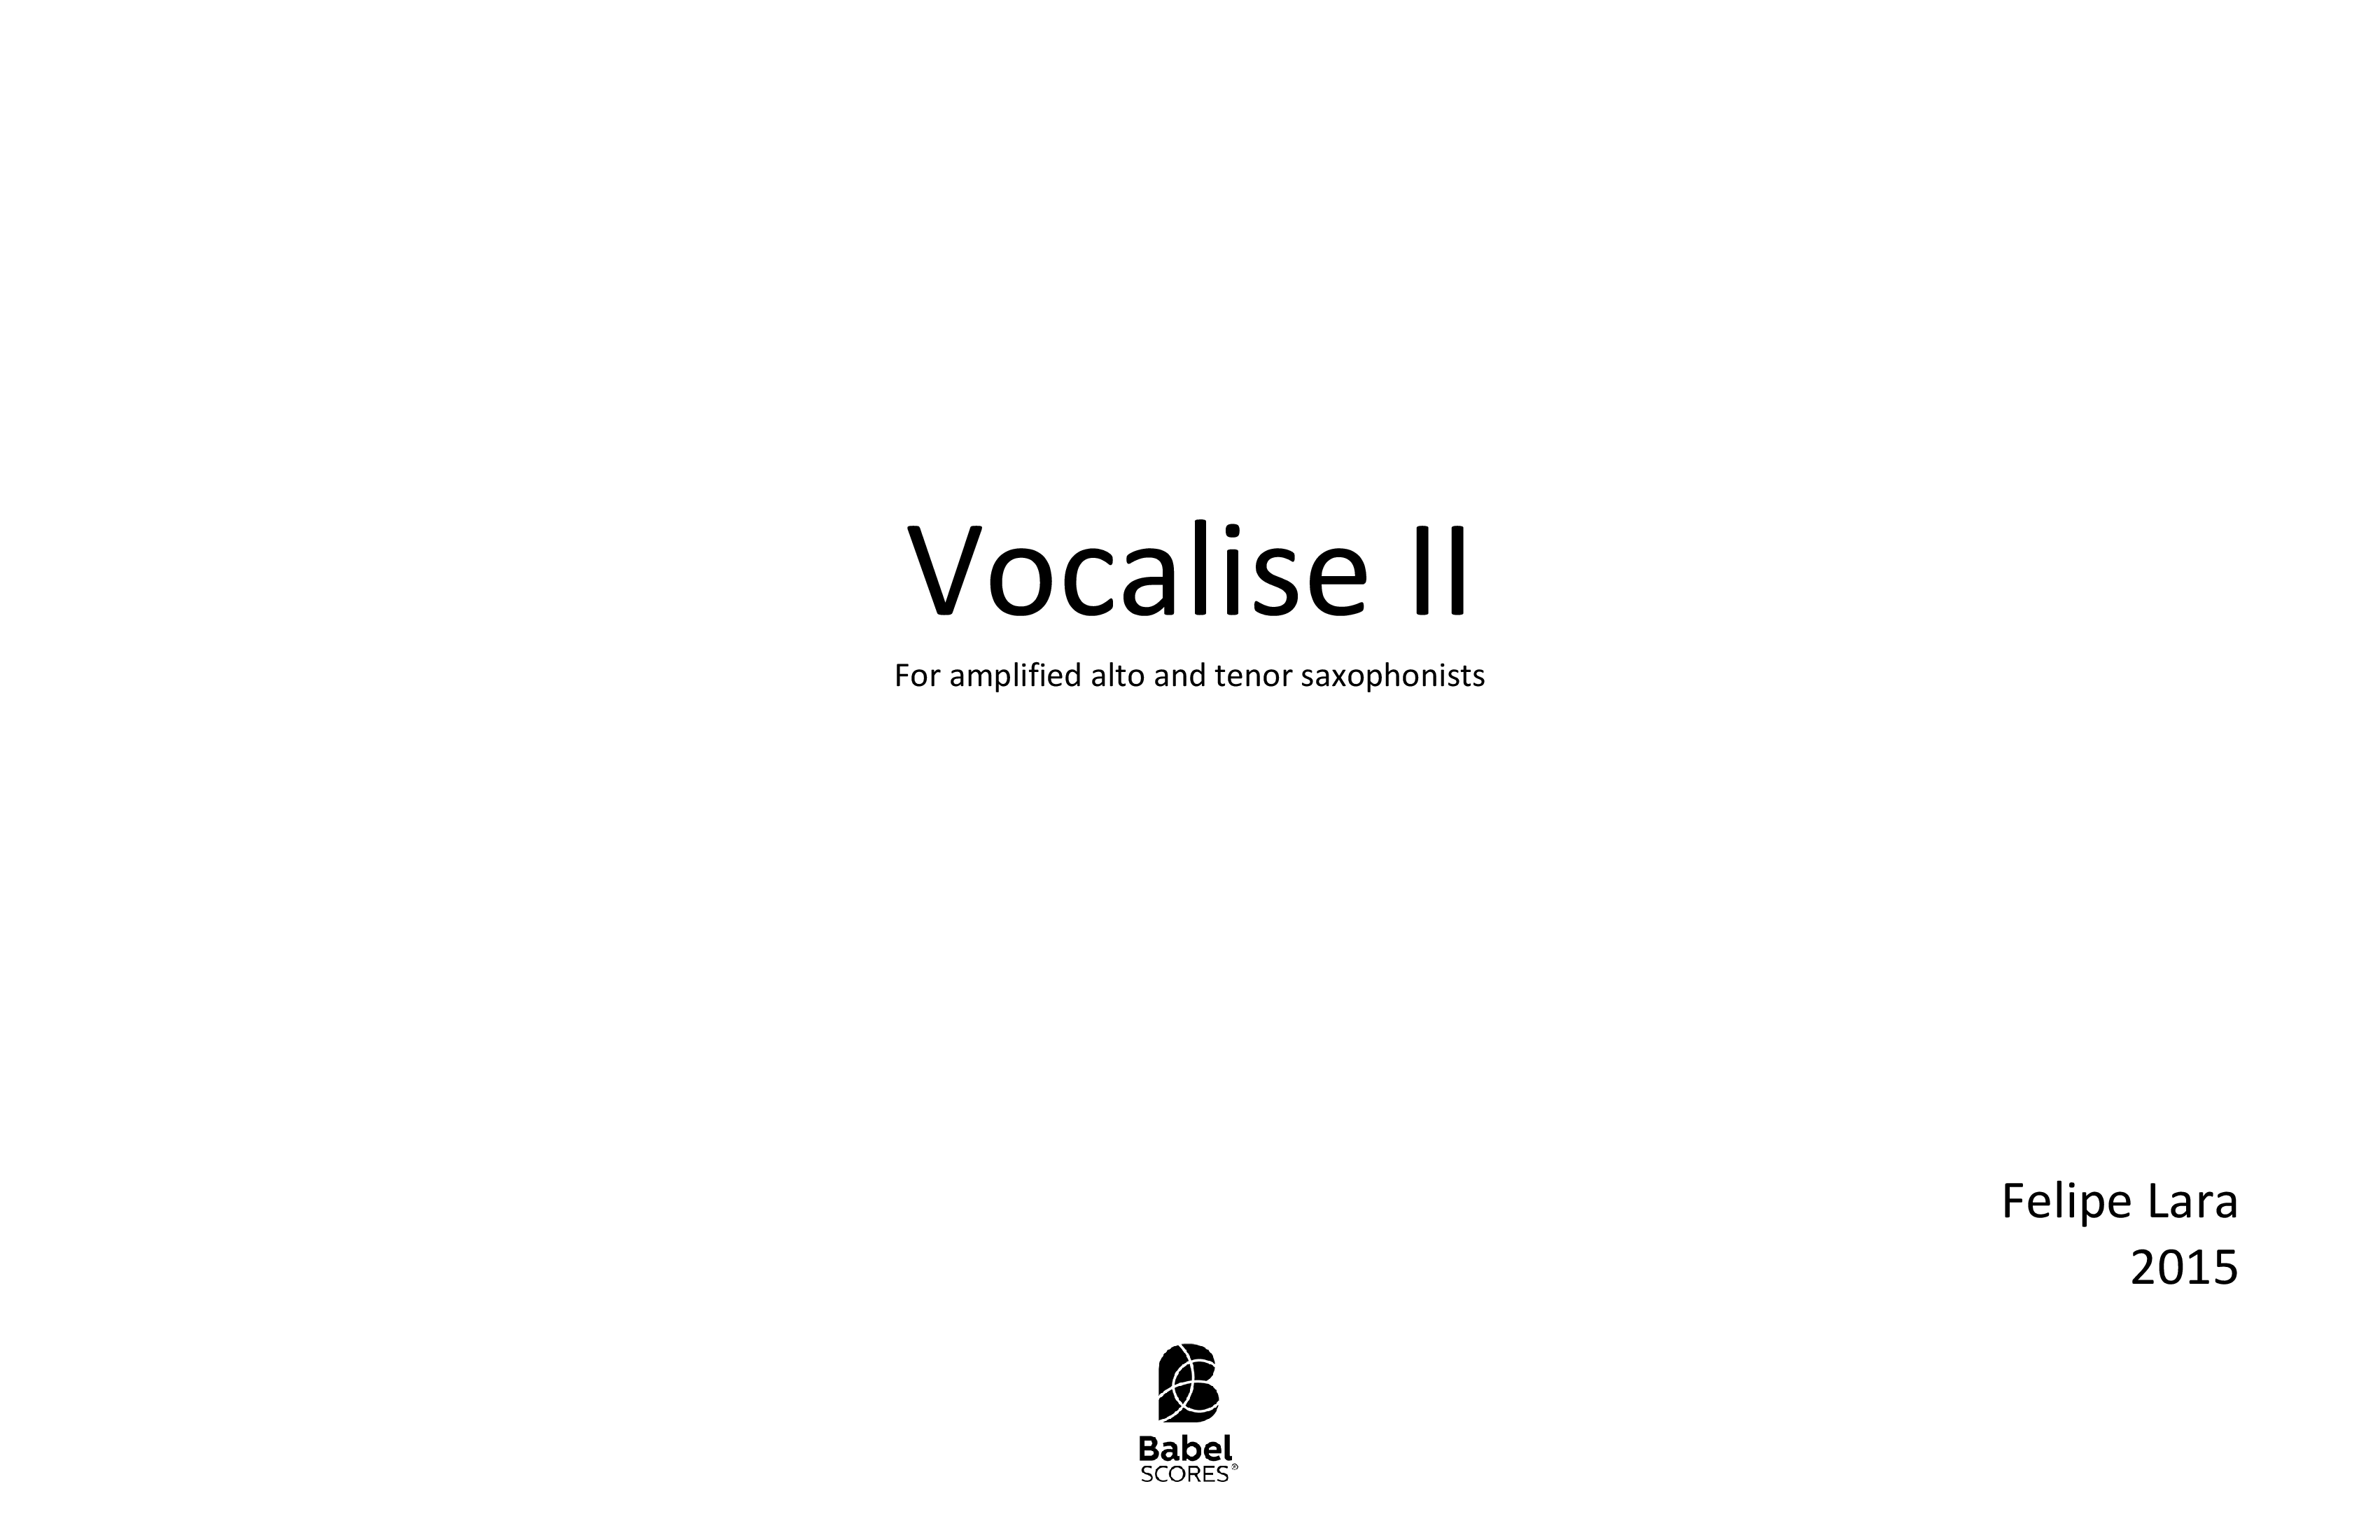 Vocalise II